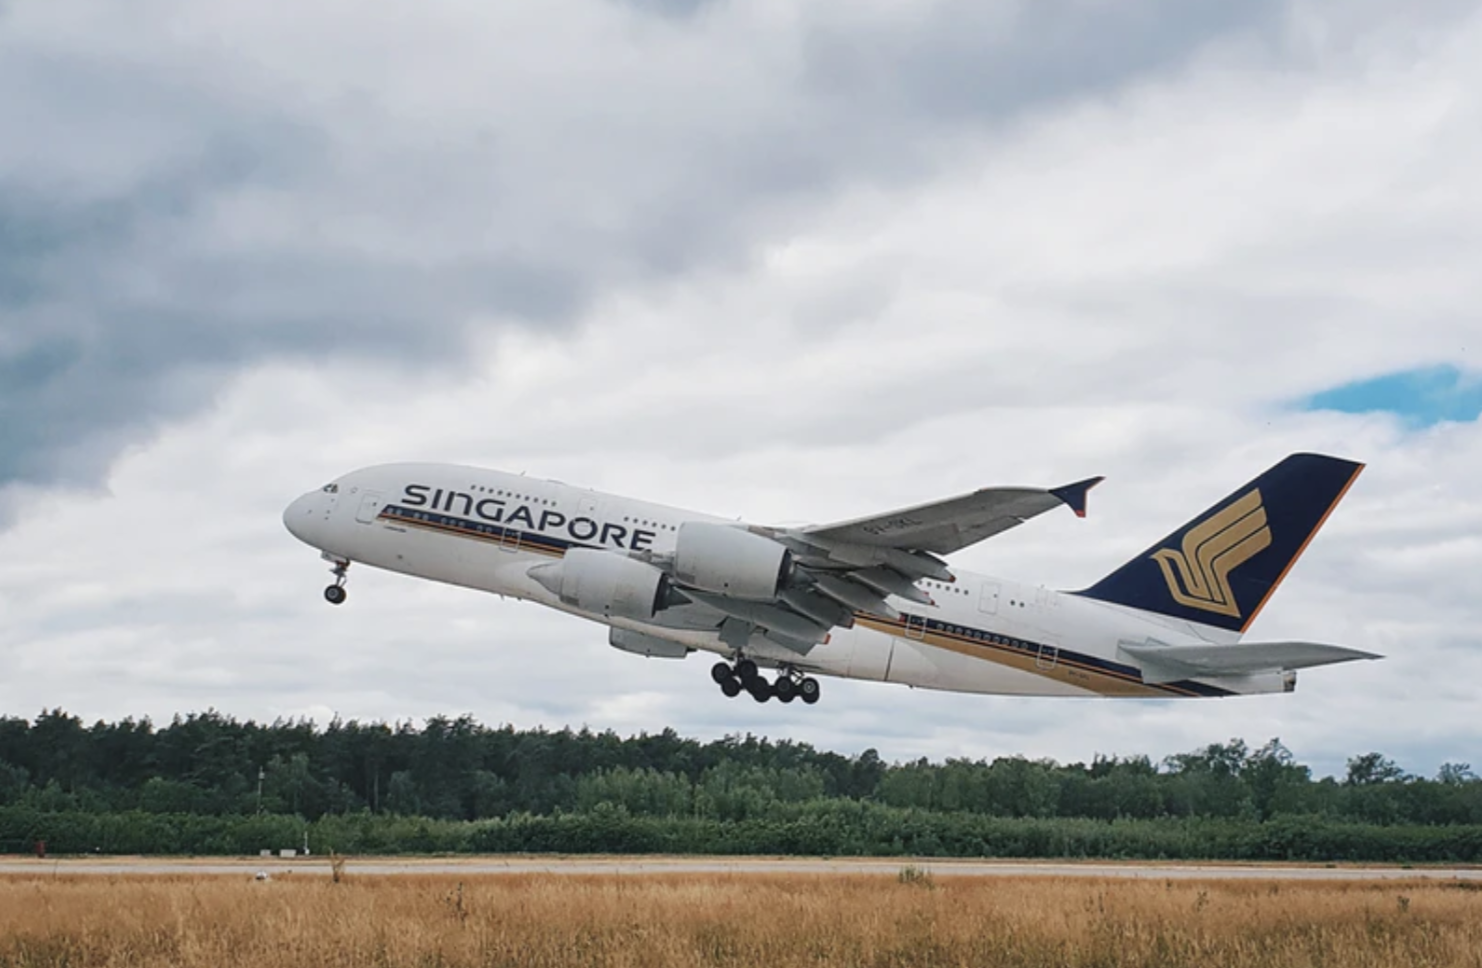 Singapore Airlines plane taking off. Photo courtesy: unsplash